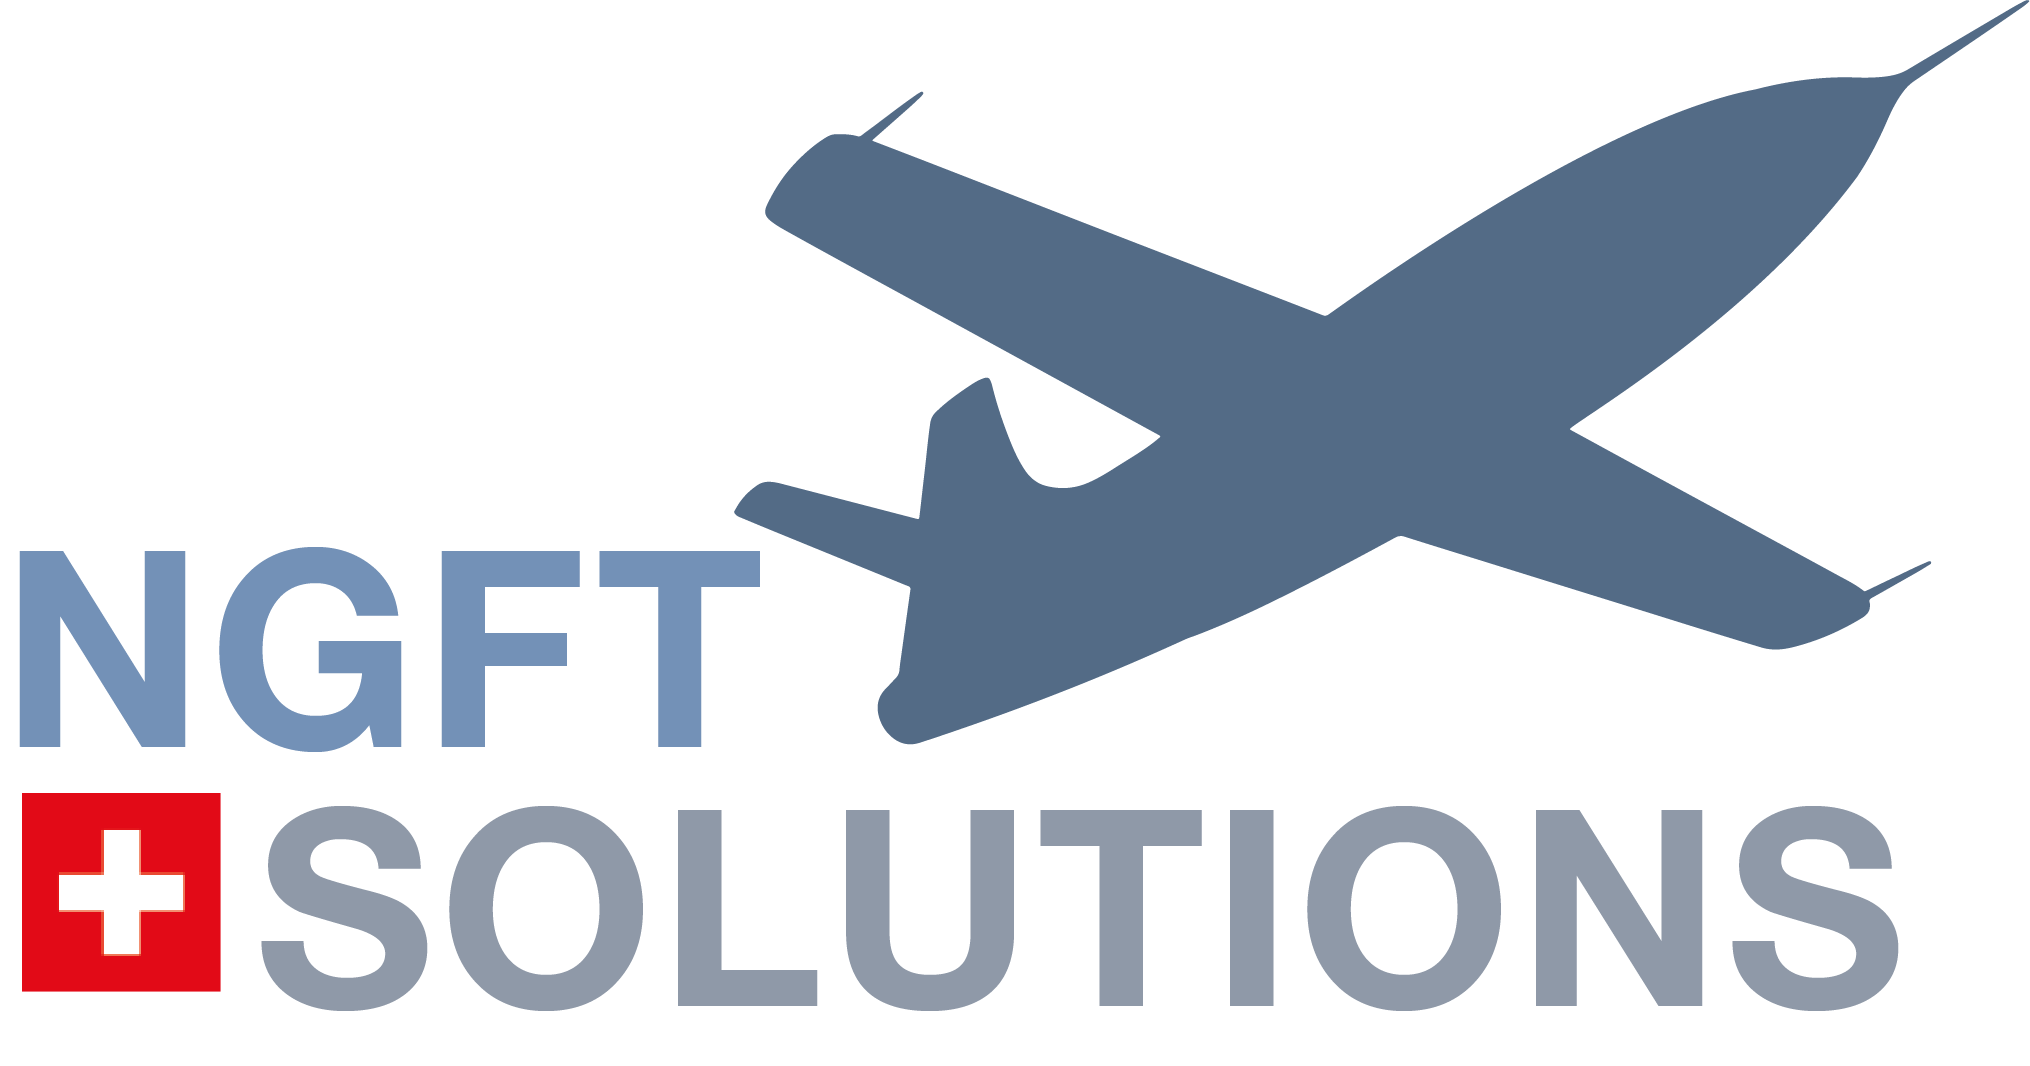 NGFT solutions logo